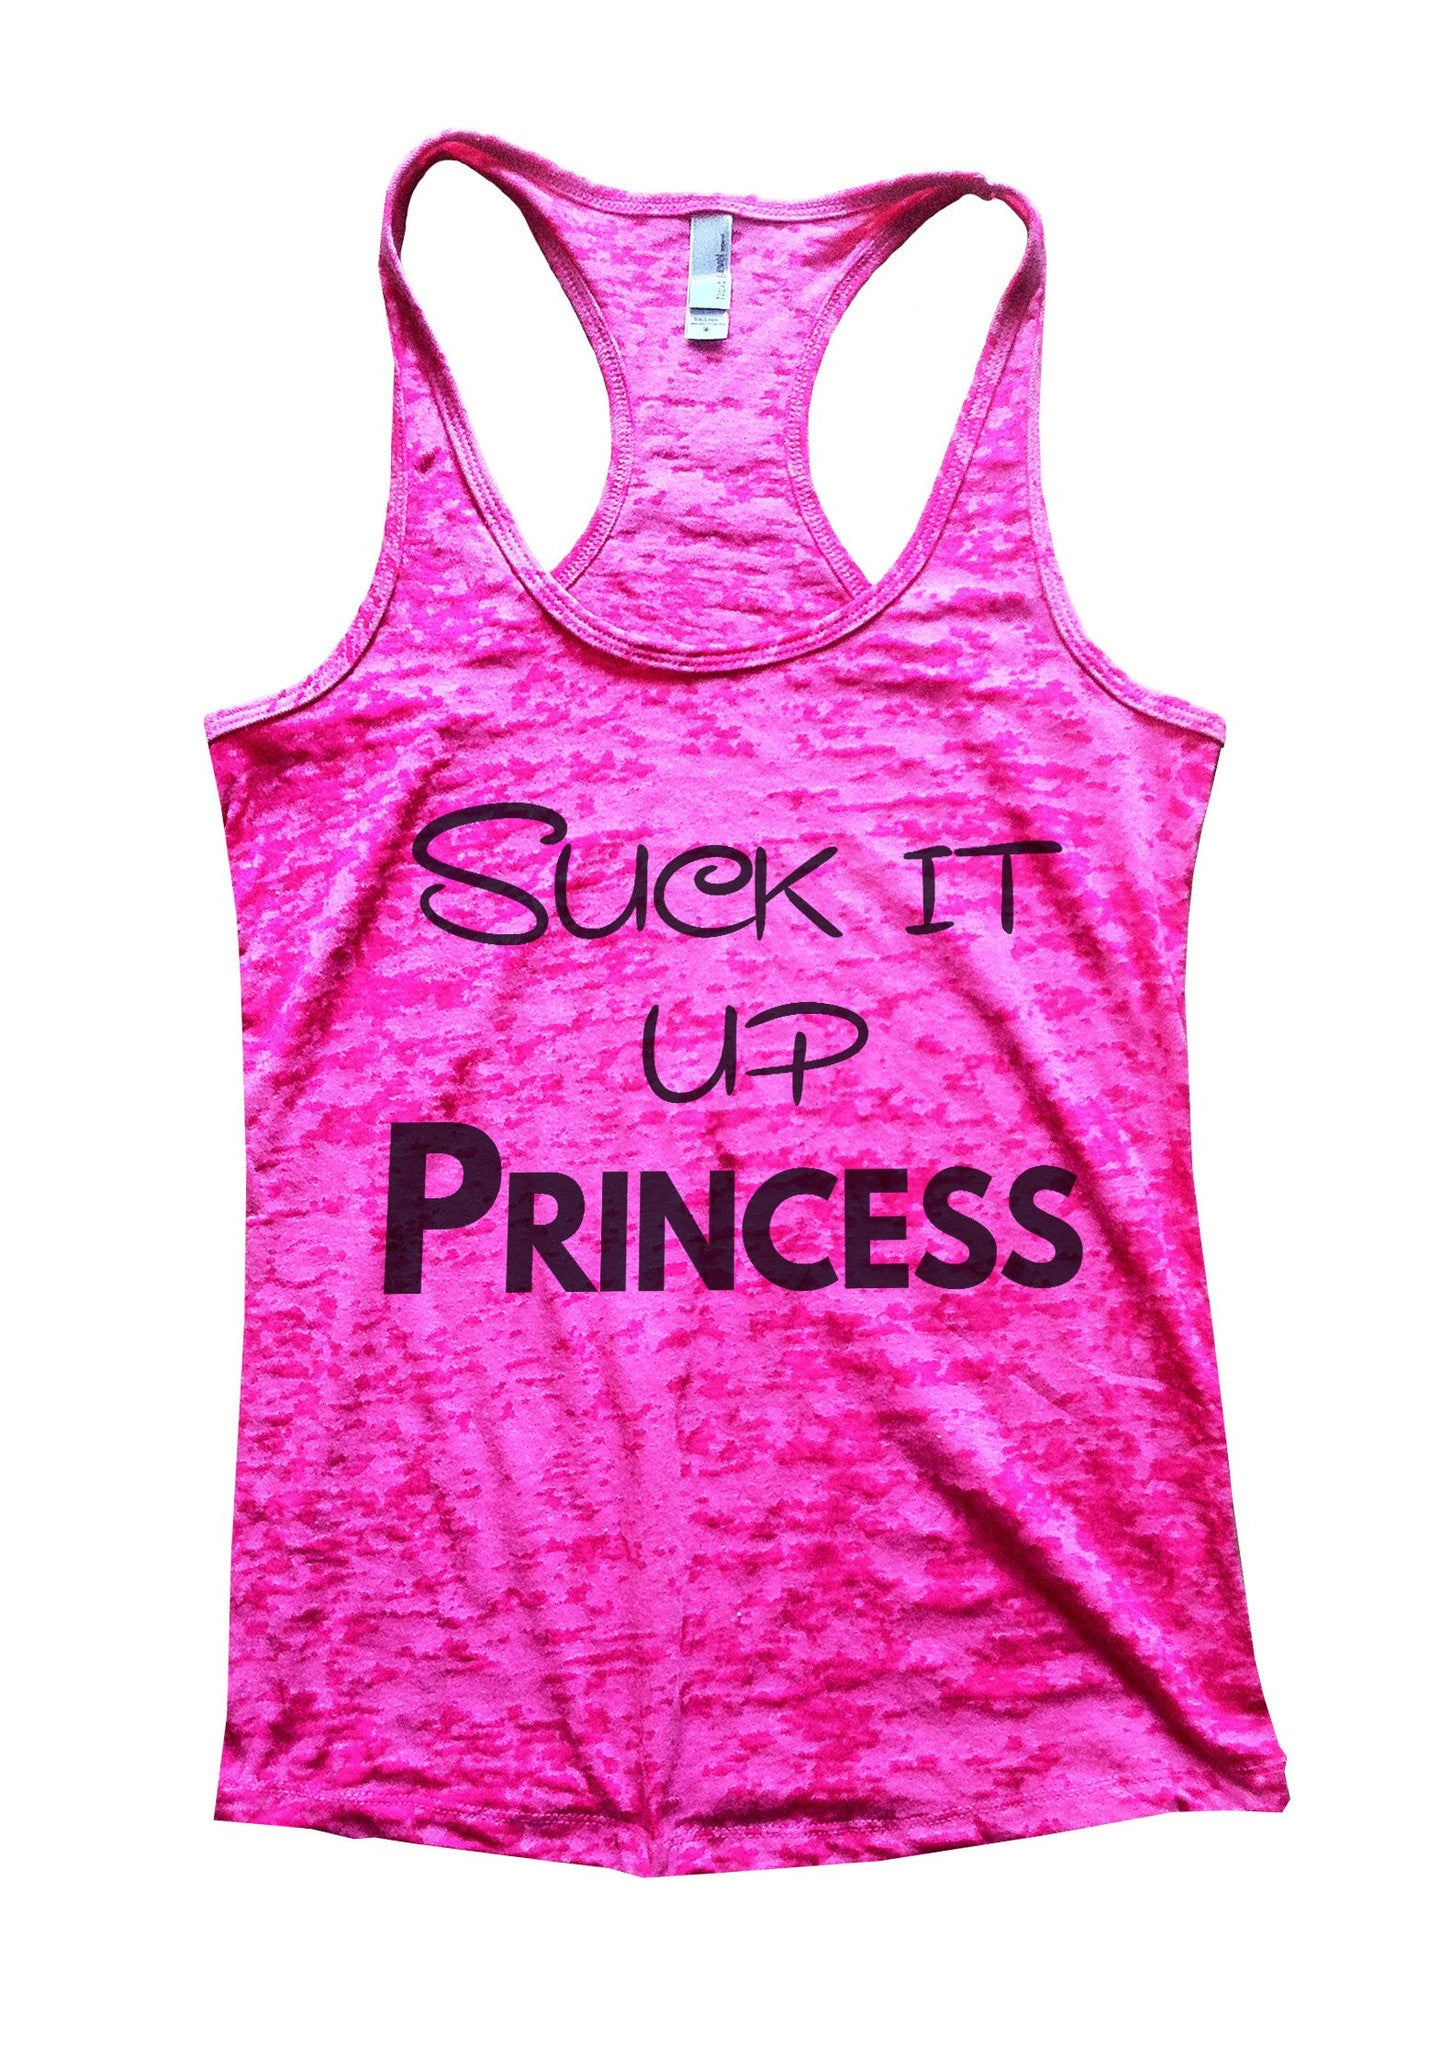 Suck It Up Princess Burnout Tank Top By BurnoutTankTops.com - 639 - Funny Shirts Tank Tops Burnouts and Triblends  - 3